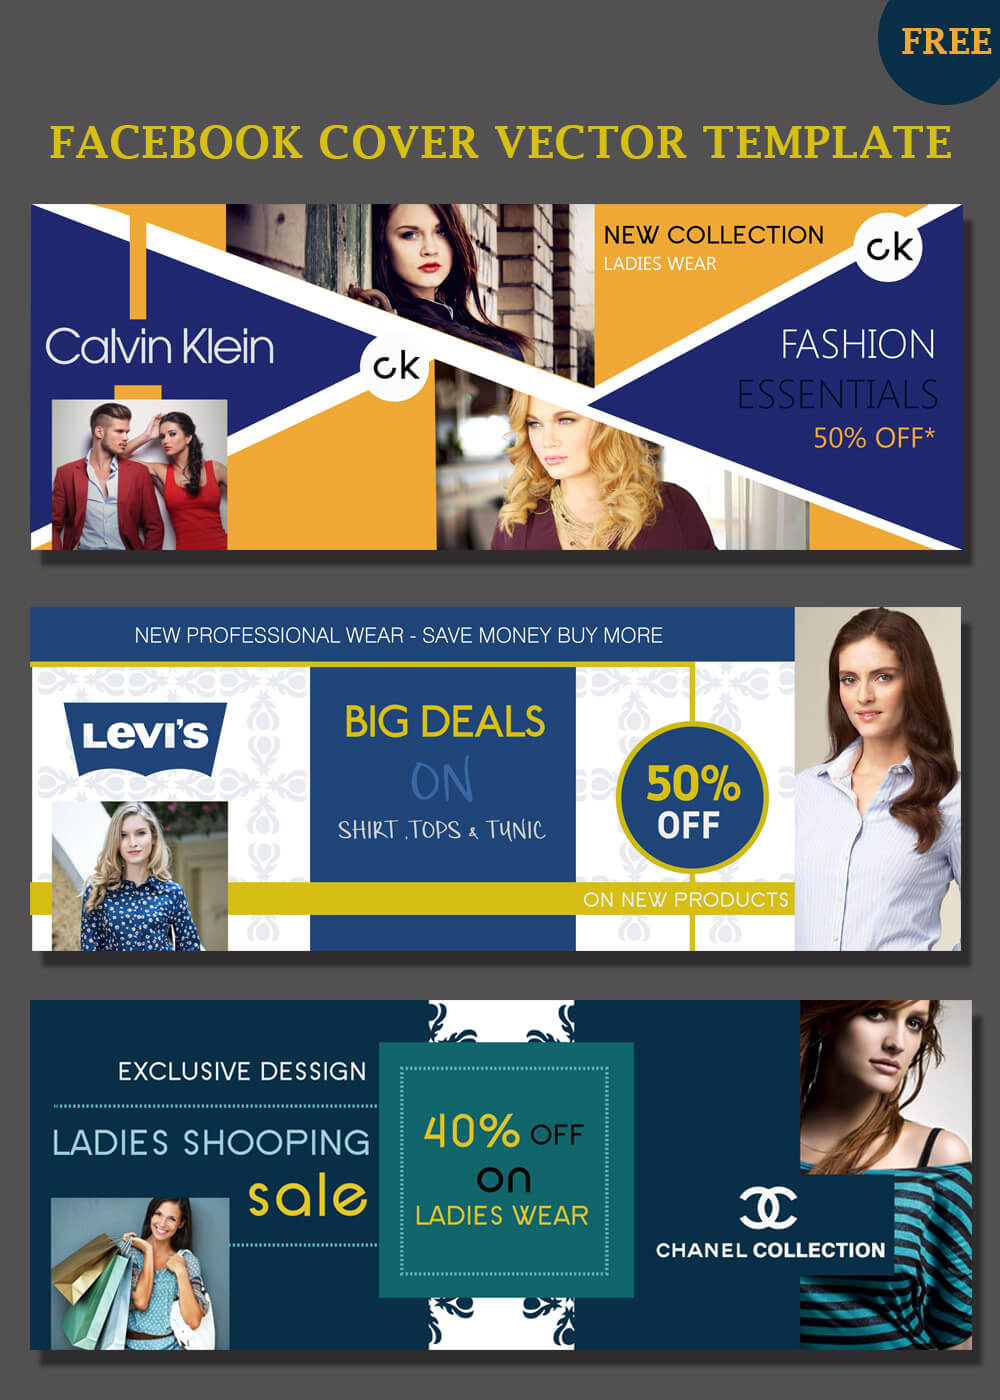 018 Template Ideas Cover Free Stunning Facebook Banner For Facebook Banner Template Psd